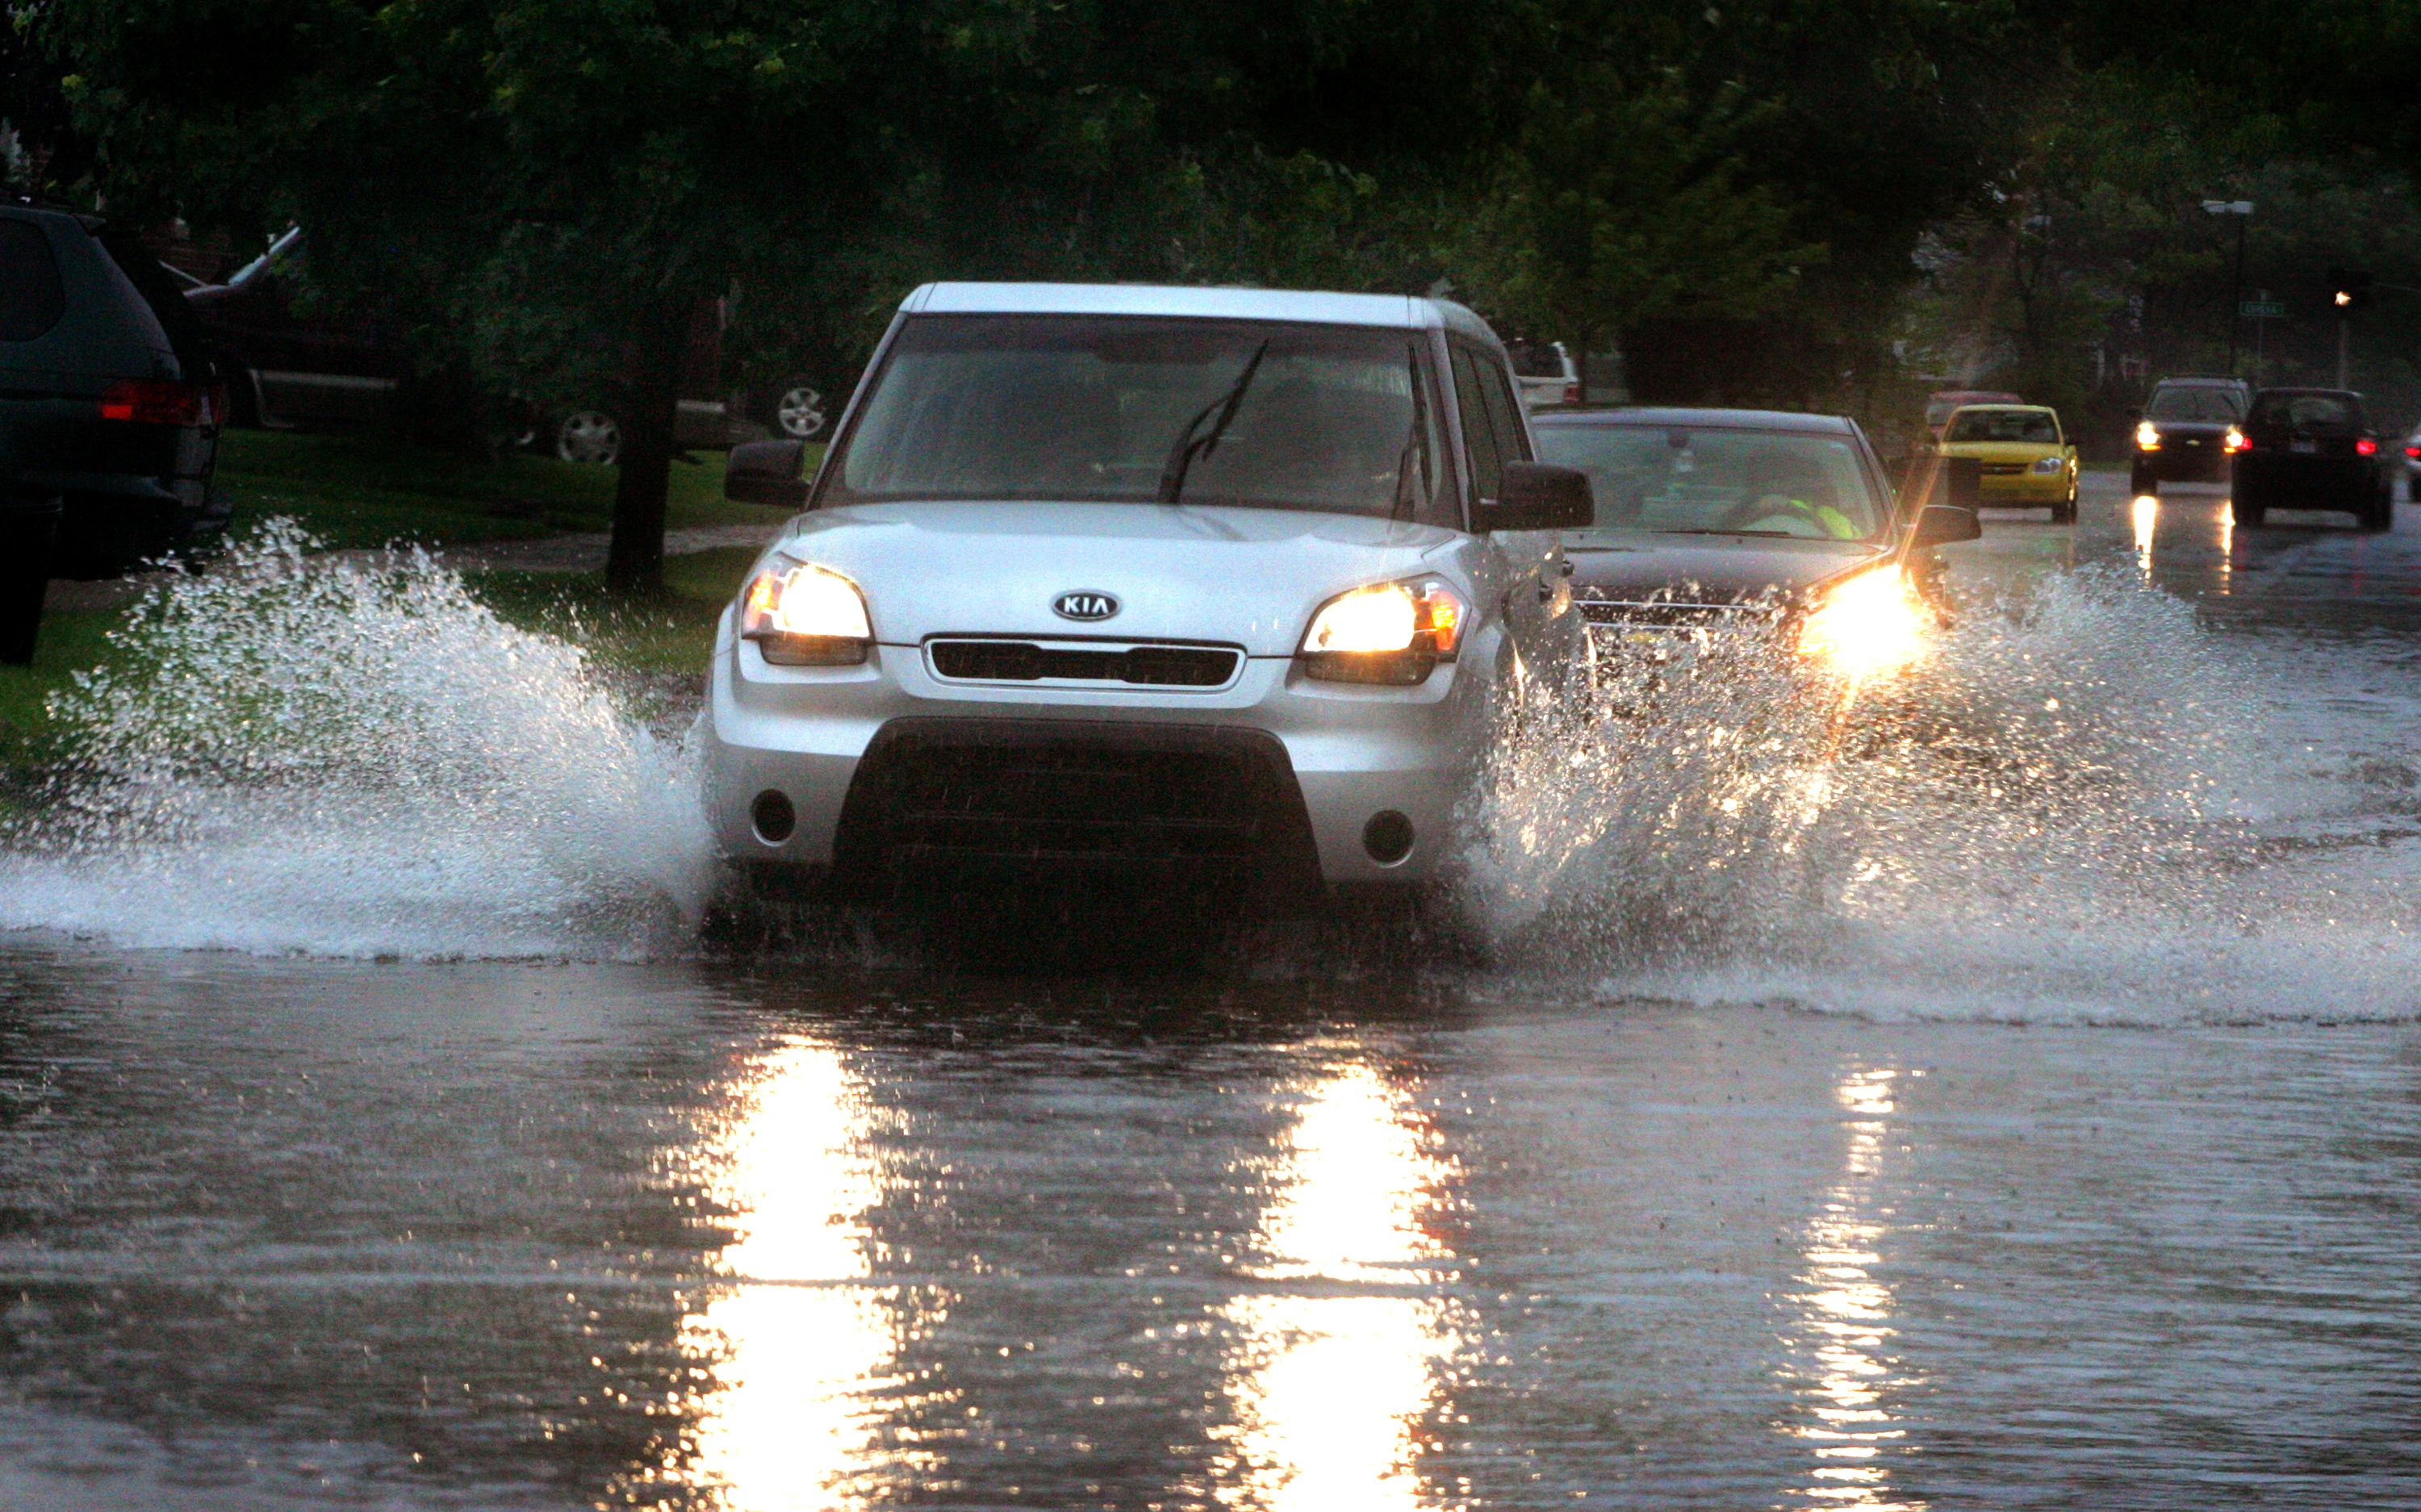 Kia Soul: Driving in flooded areas